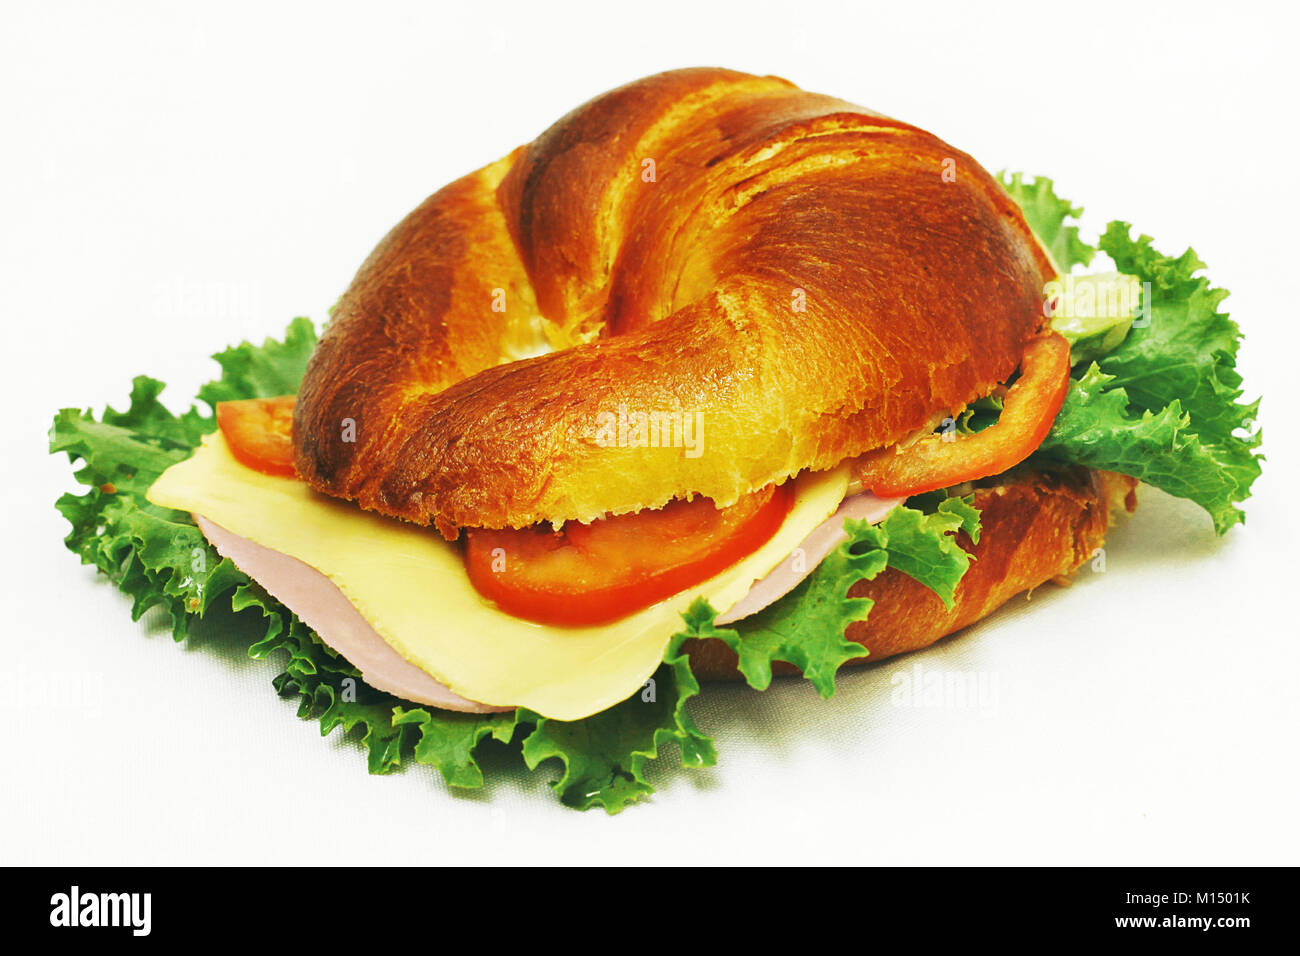 croissant ham and cheese - Stock Image